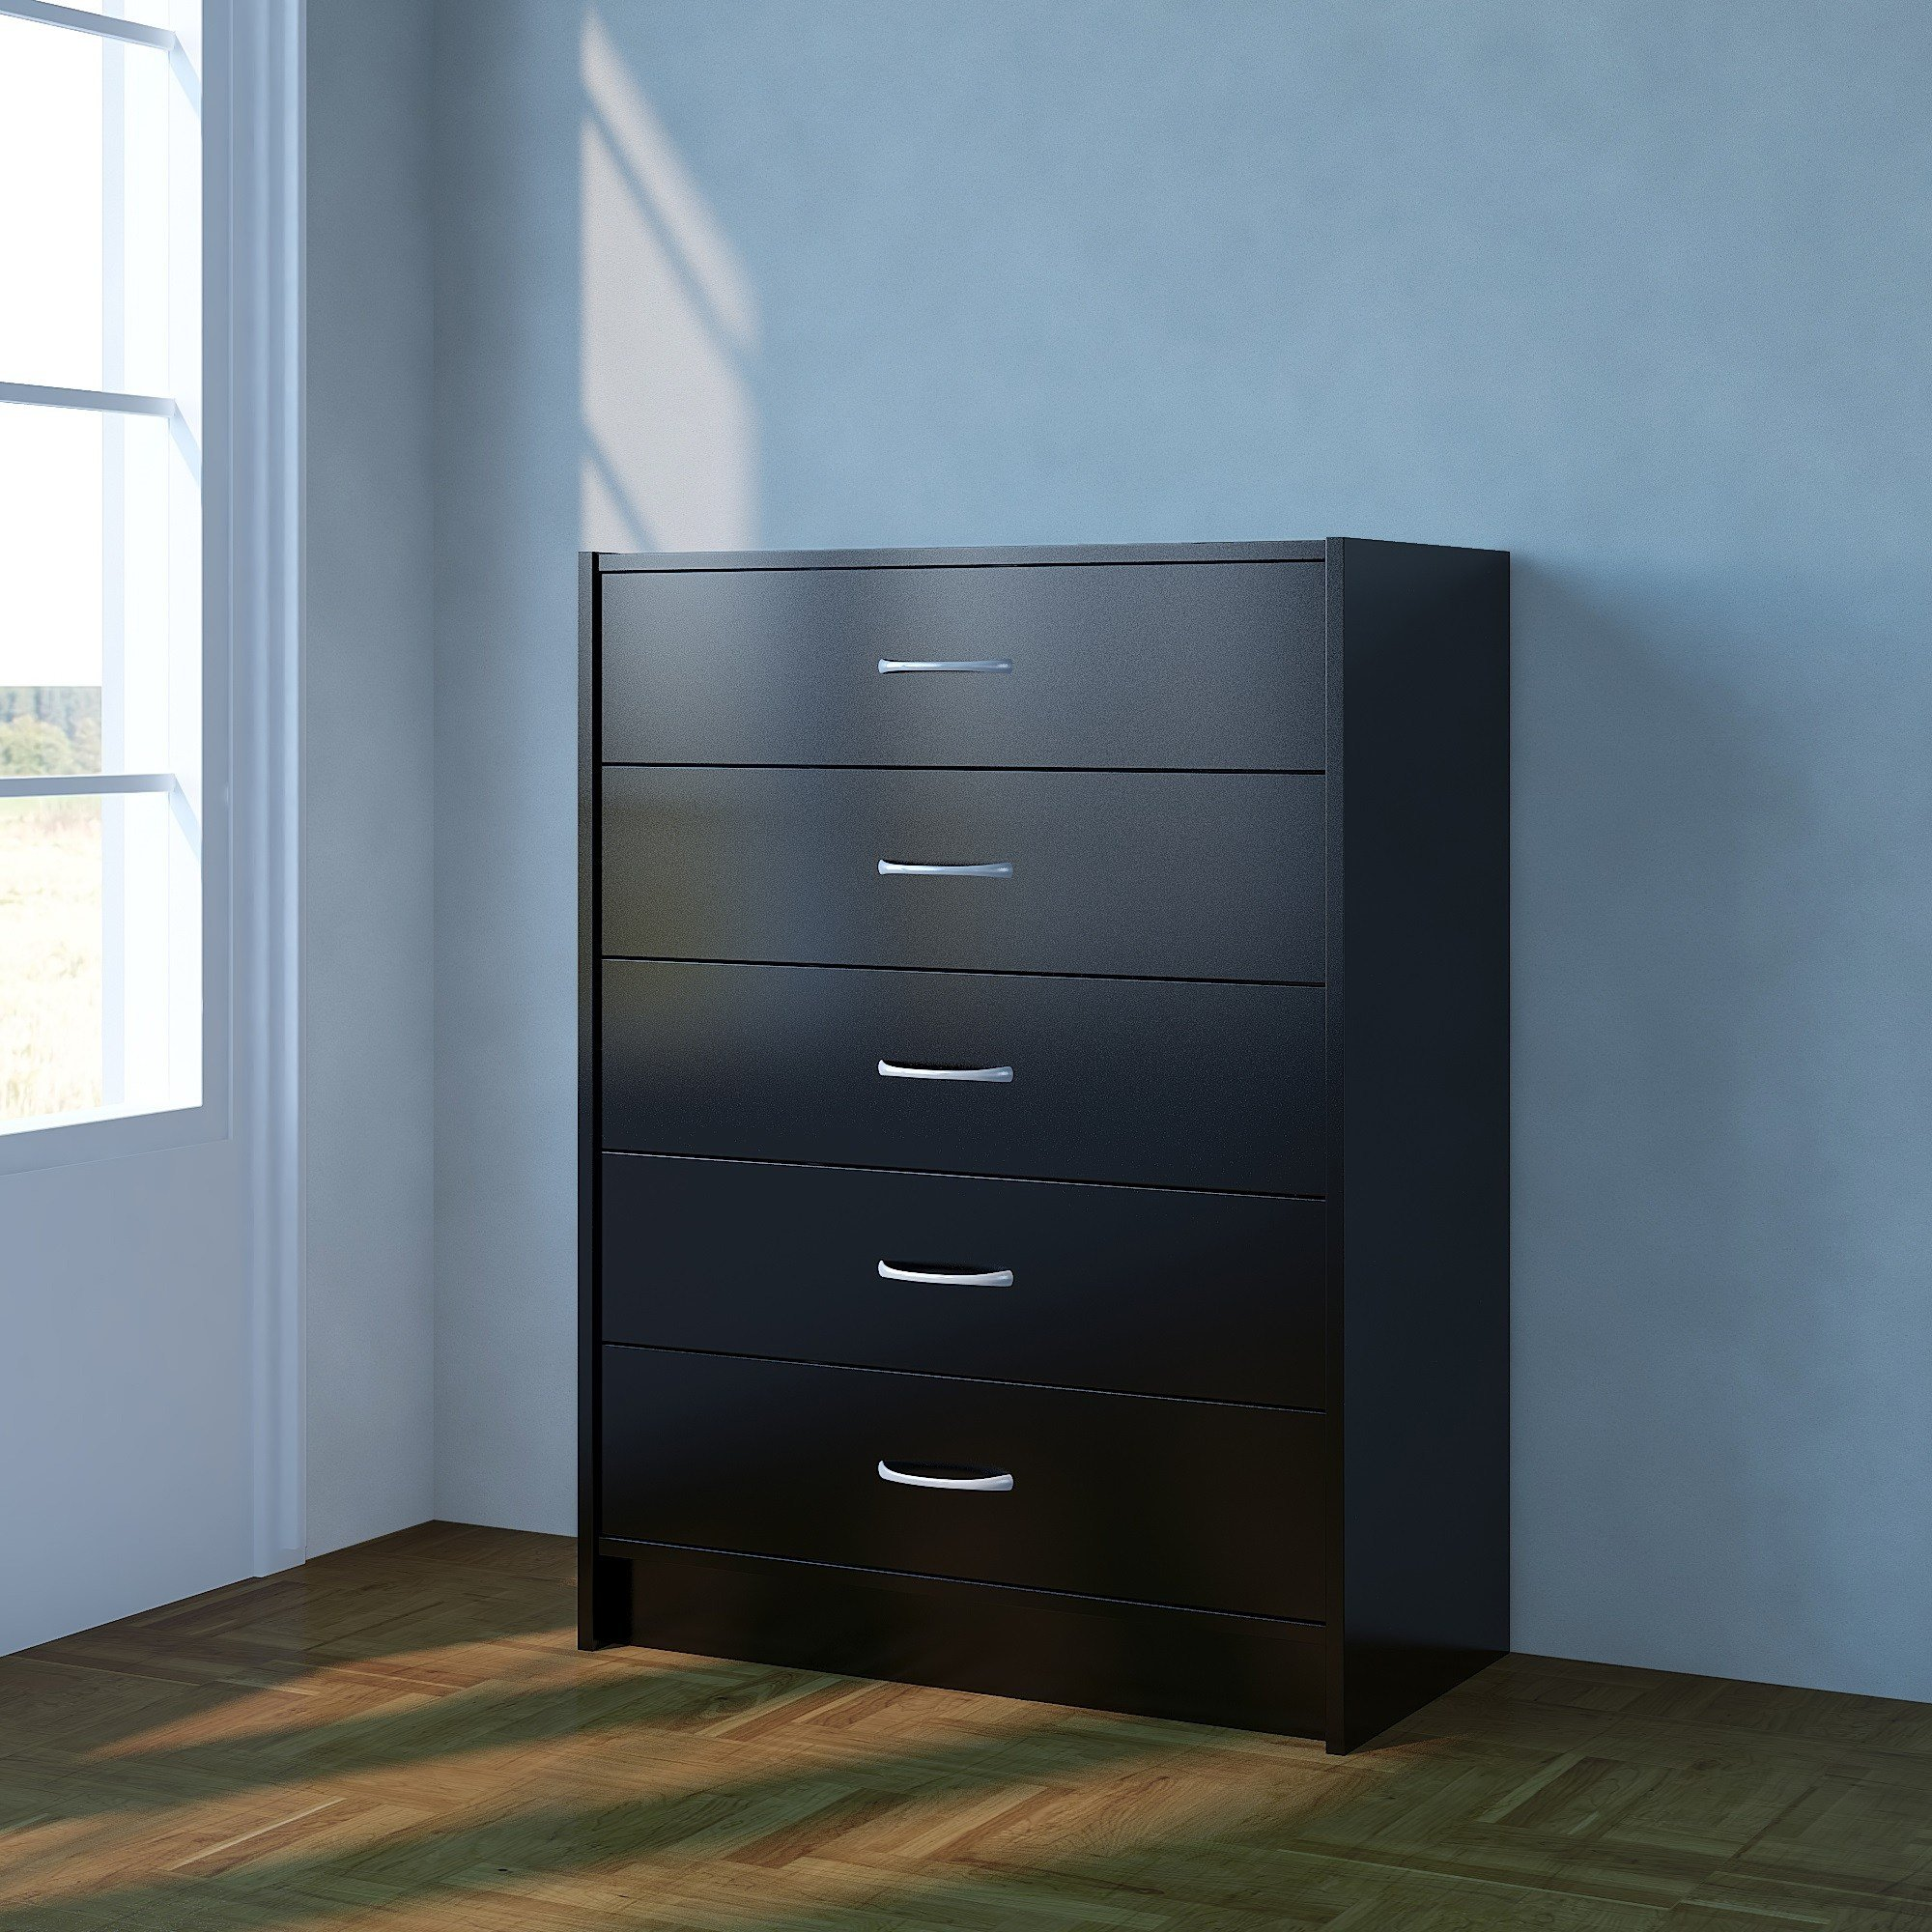 Best Chest Of Drawers Black Bedroom Furniture 5 Drawer Metal Handles Runners Ebay With Pictures